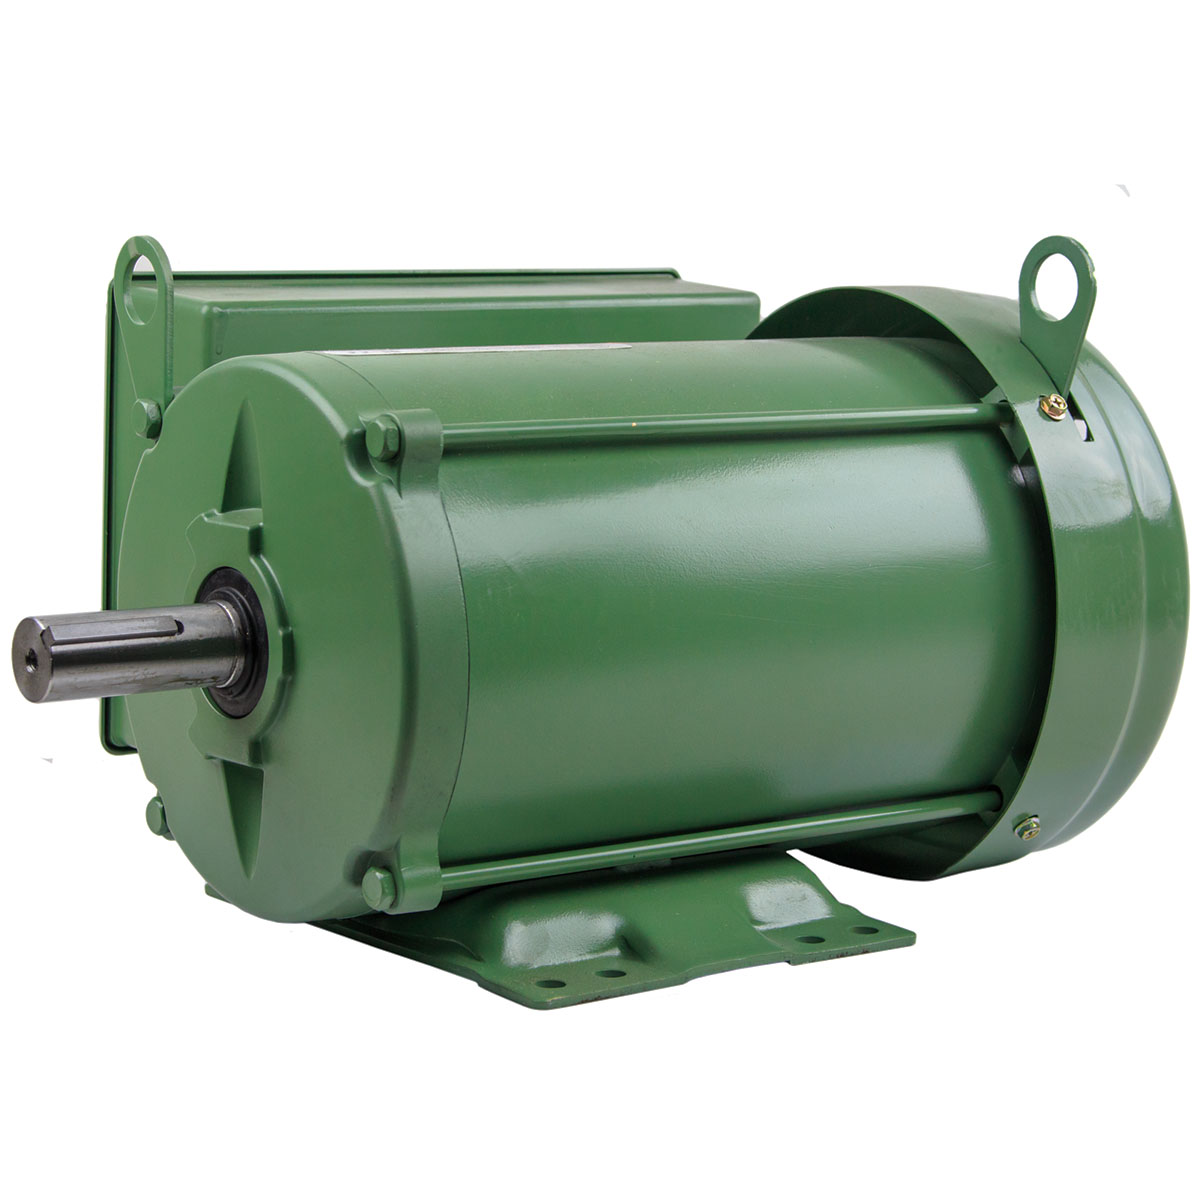 5 HP Farm Duty Single Phase Electric Motor 1800 RPM 184T Frame TEFC 208/230 Volt